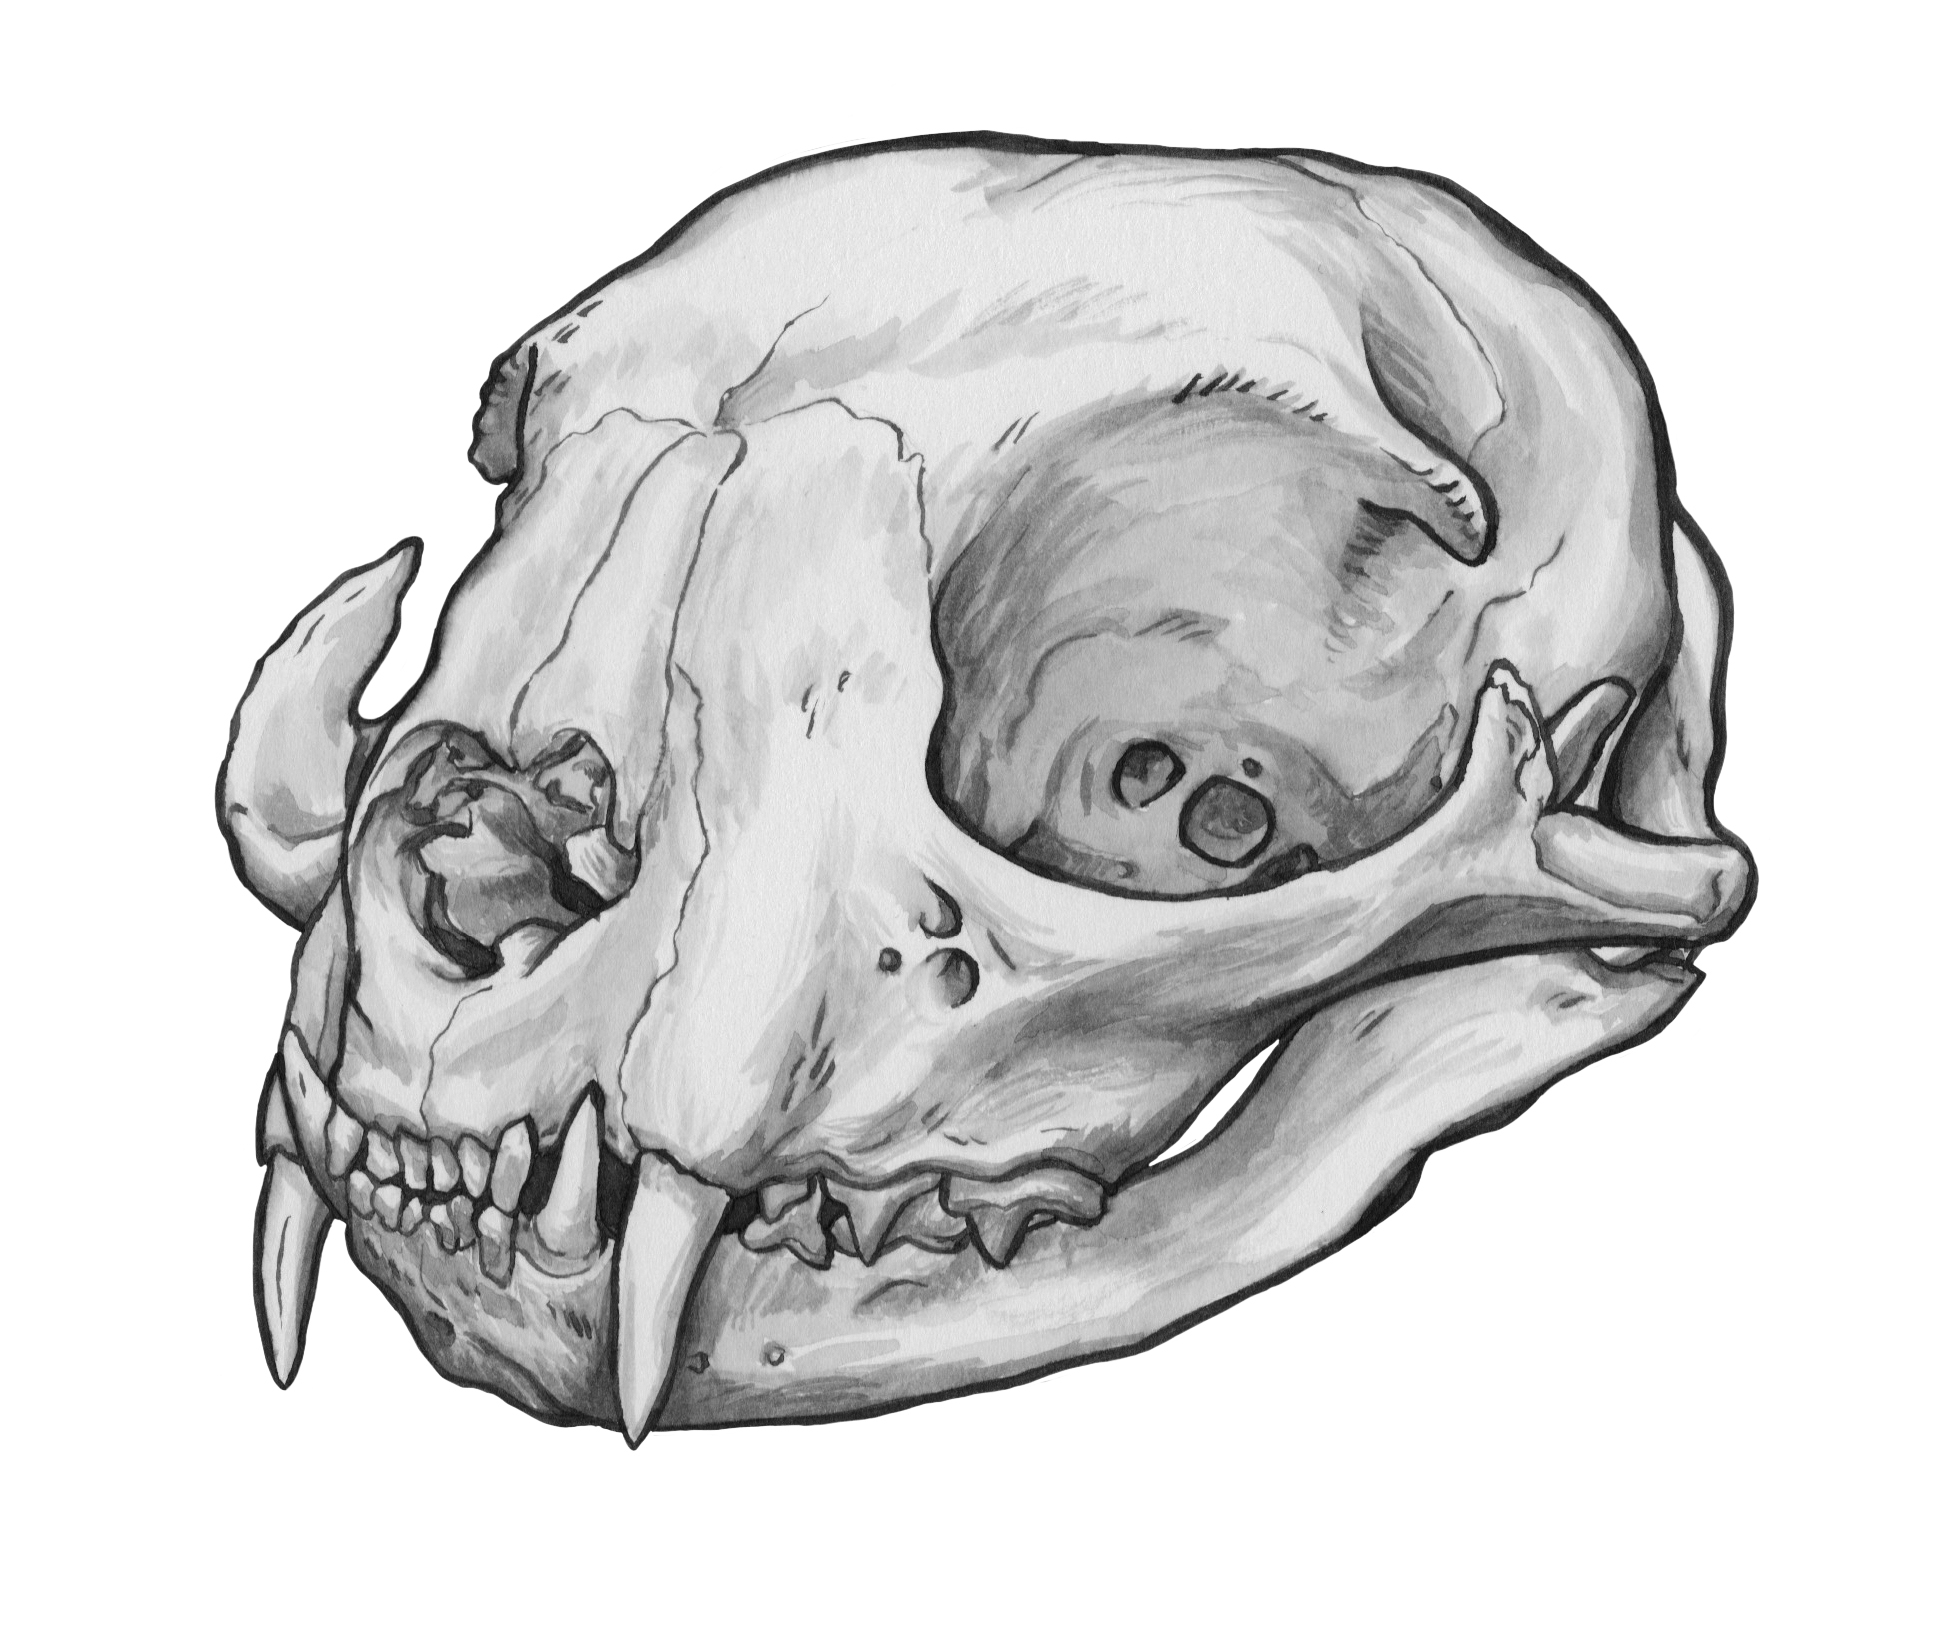 Cool Pen Drawings Animal Skulls